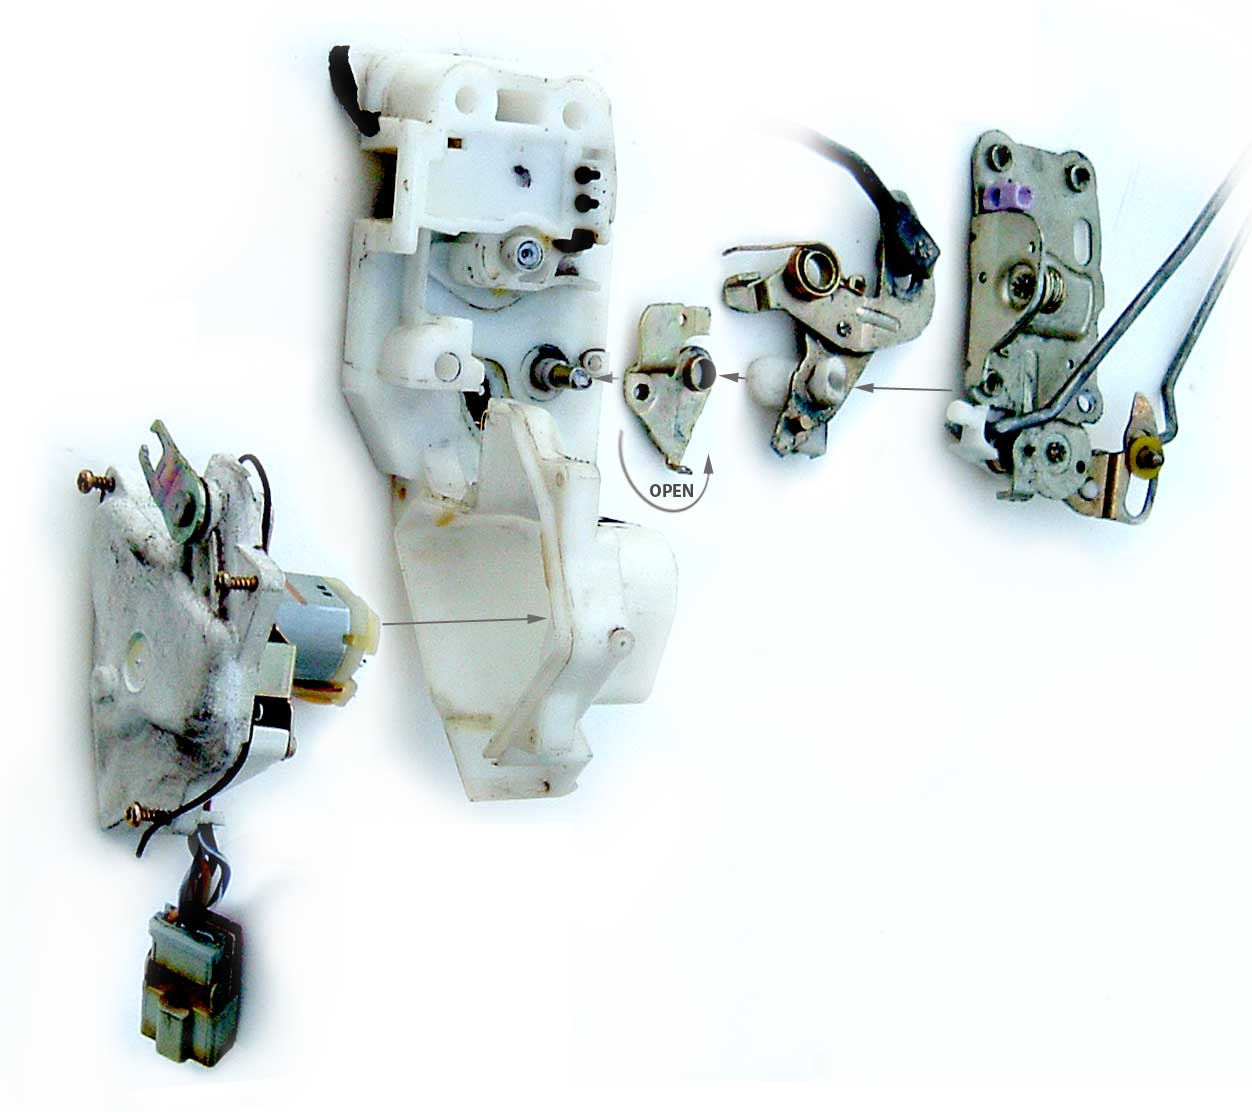 actuator door lock exploded view. Exploded diagram view of the Accord ...